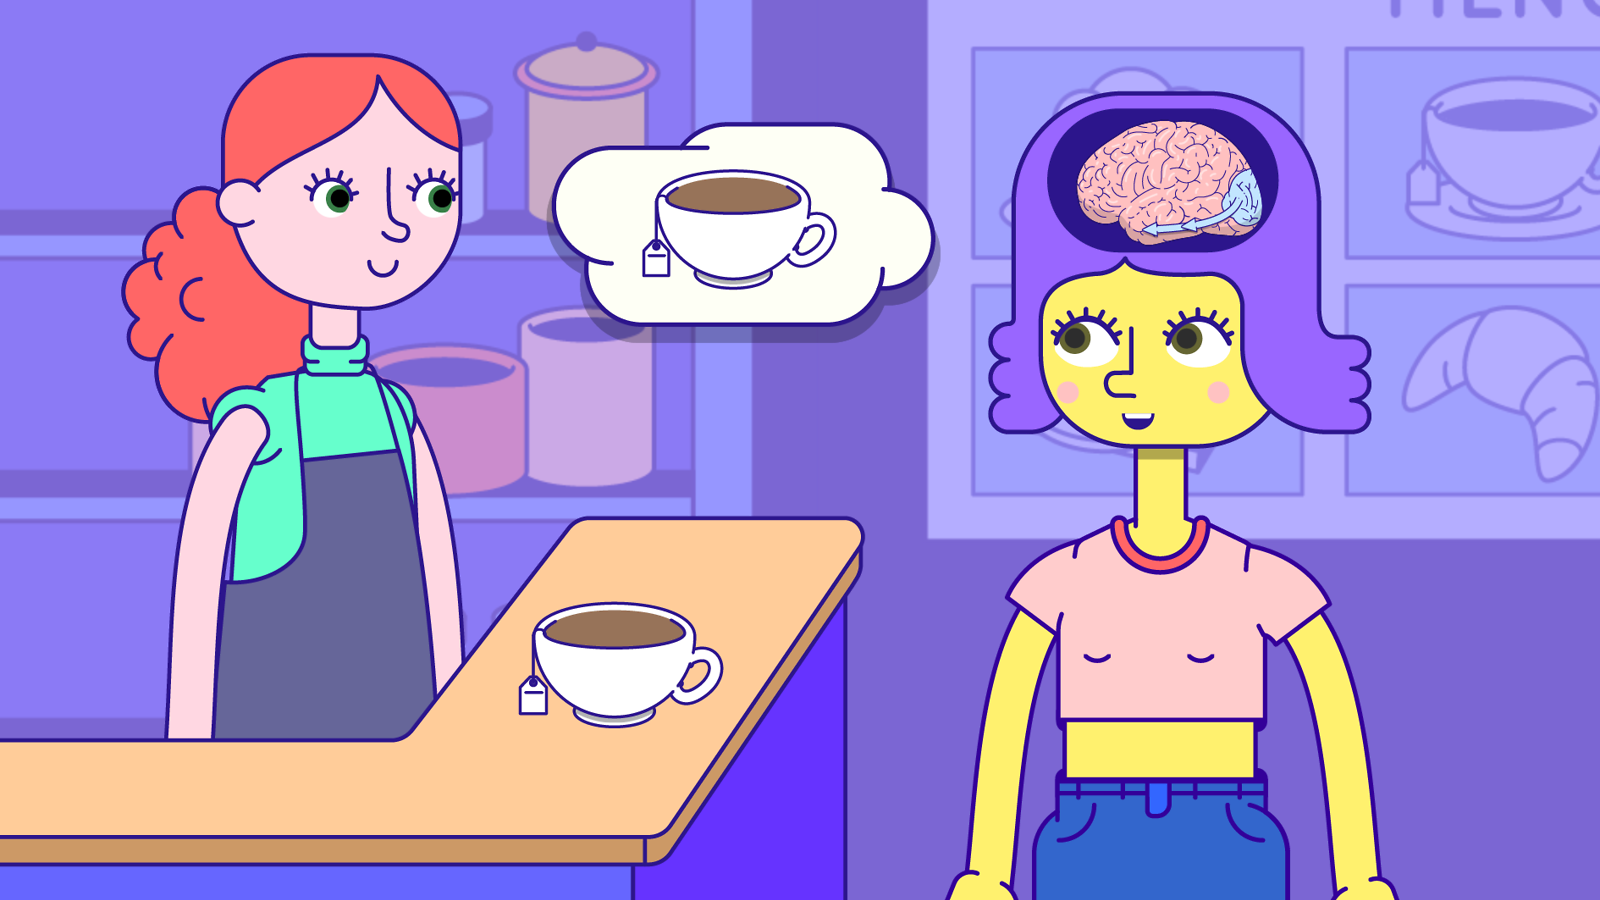 Cartoon: a thought bubble between a barista and a customer contains a cup of coffee.